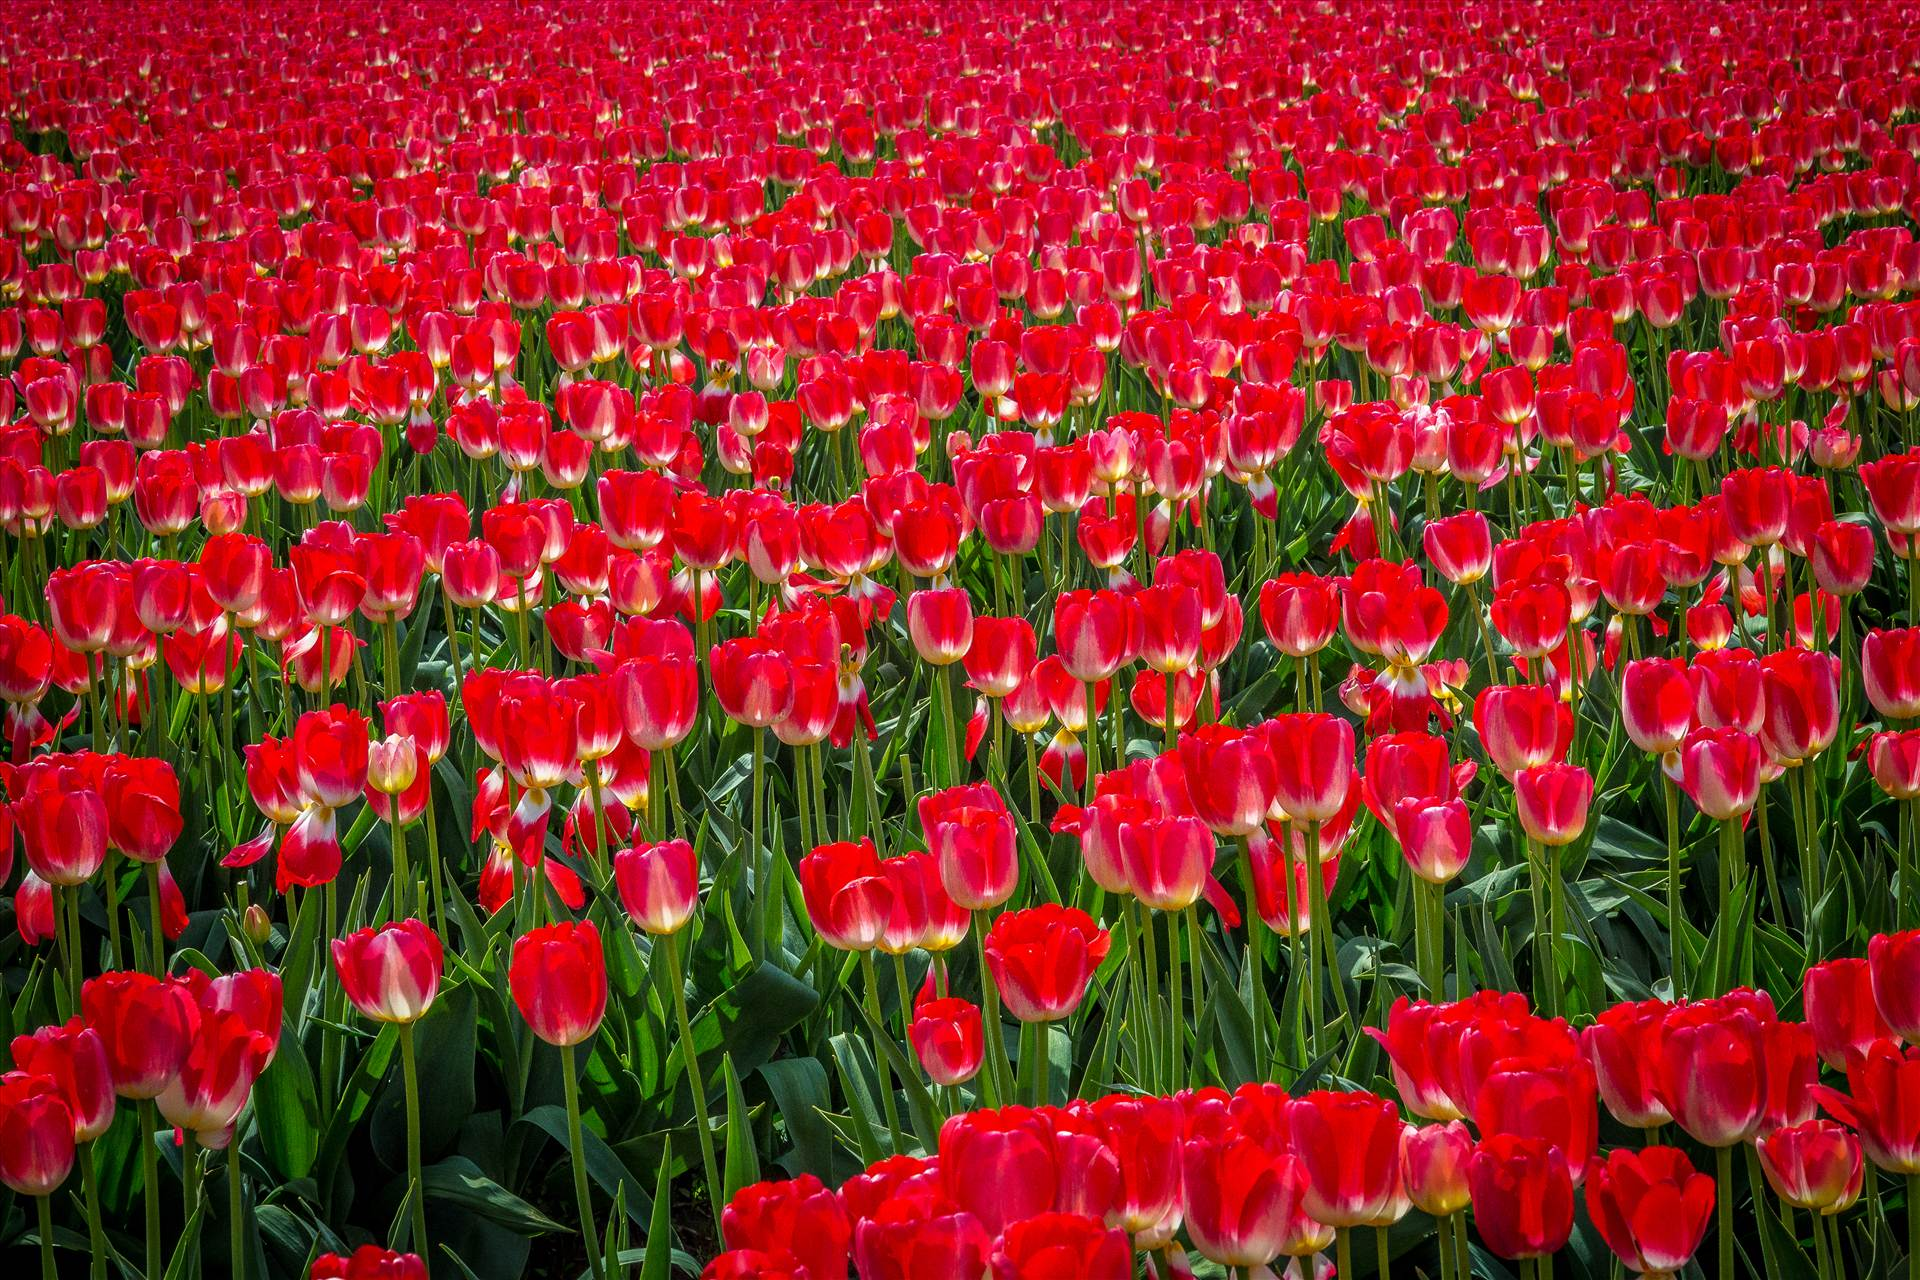 Sea of Red Tulips - From the Skagit County Tulip Festival in Washington state. by D Scott Smith